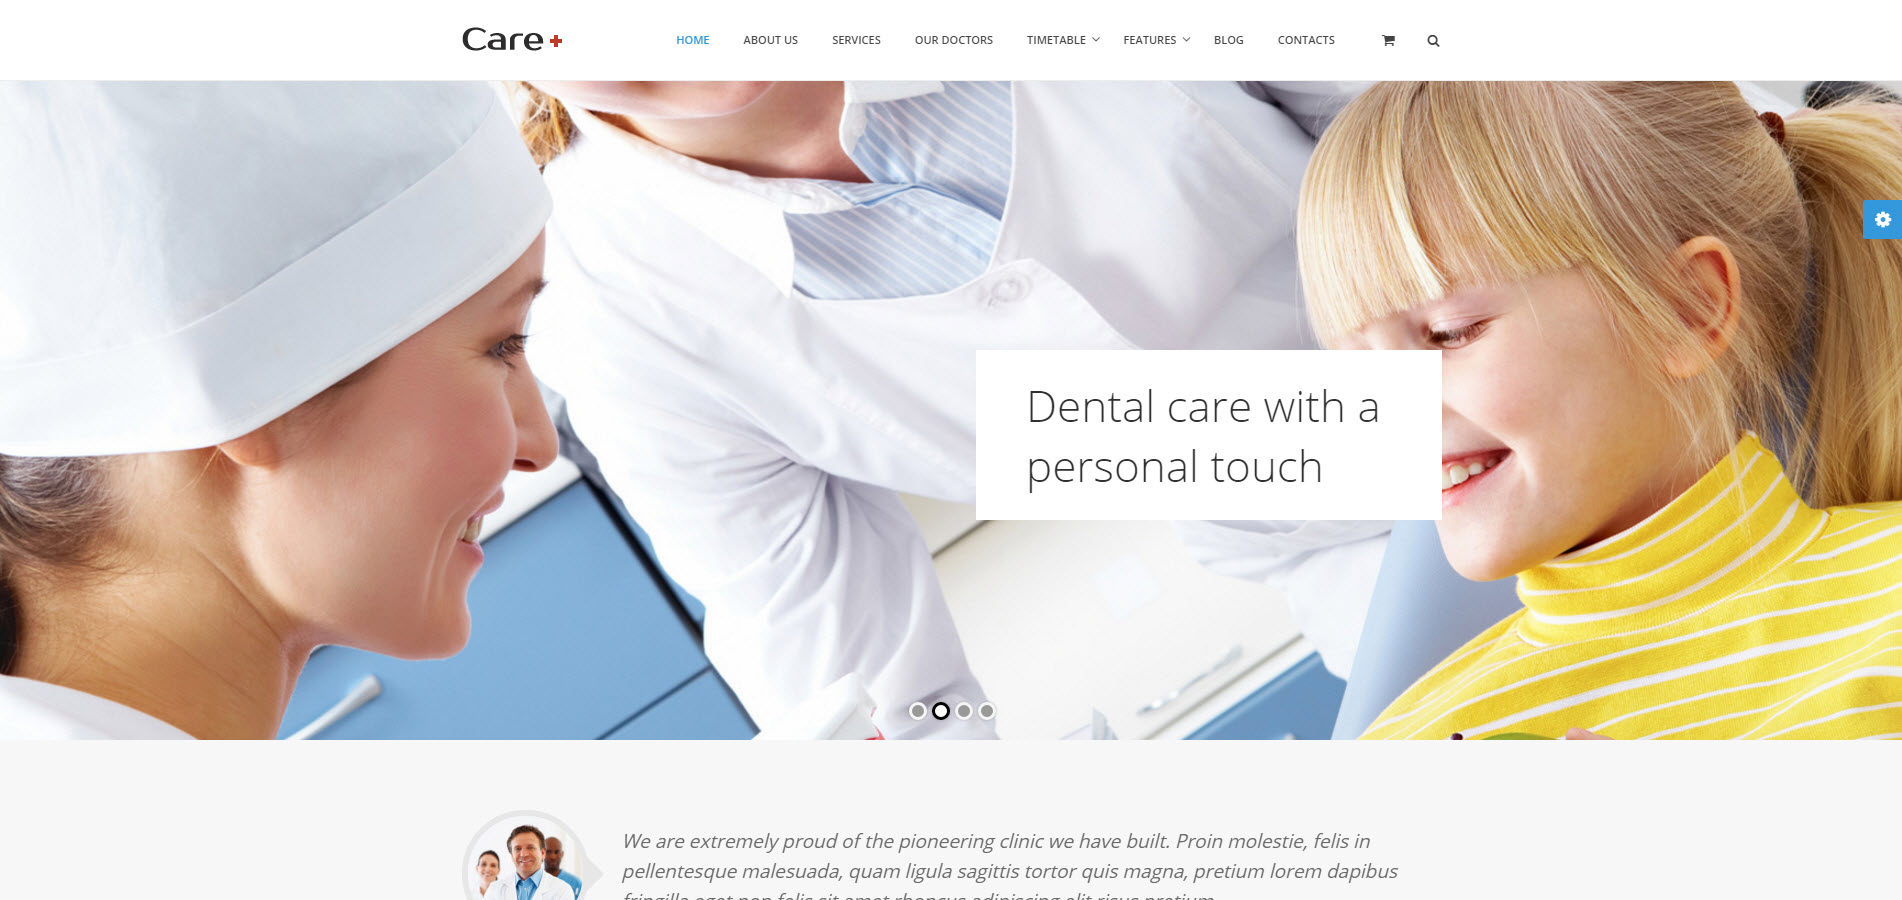 care wordpress theme - medicare wordpress theme - heath wordpress theme - theme for medical - theme for dentist